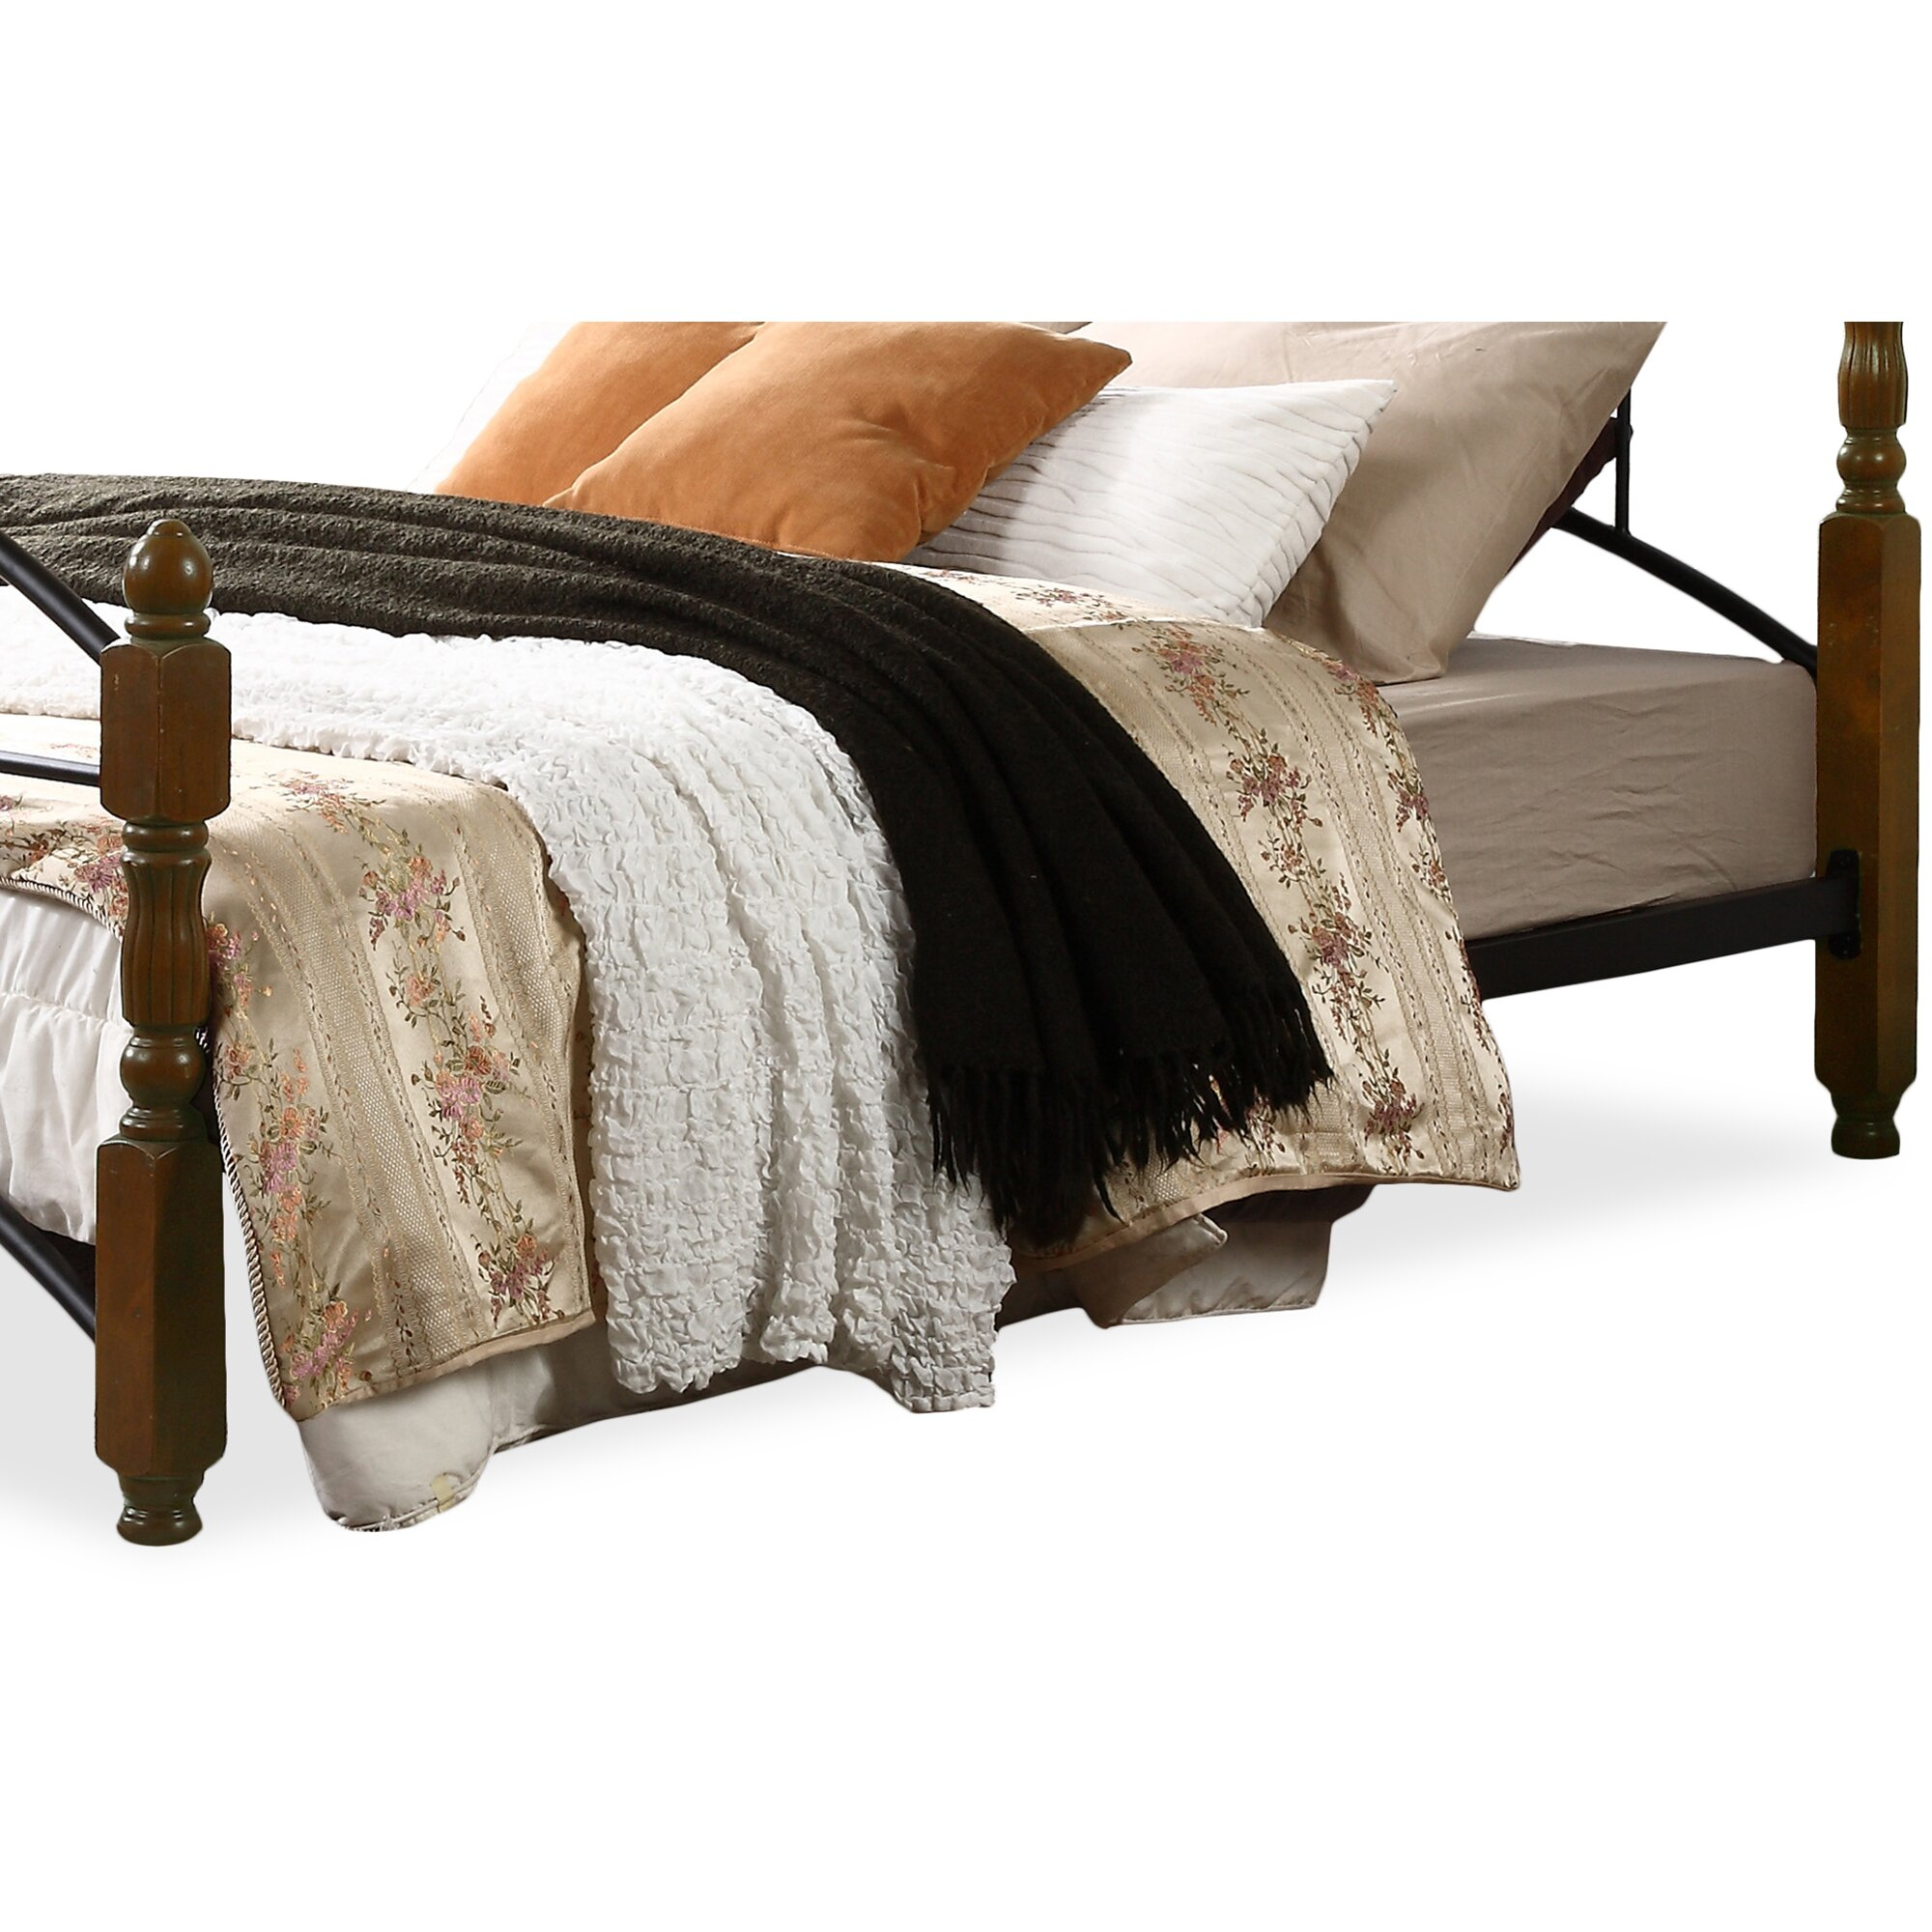 Furniture Bedroom Furniture Queen Sized Beds Wholesale Interiors